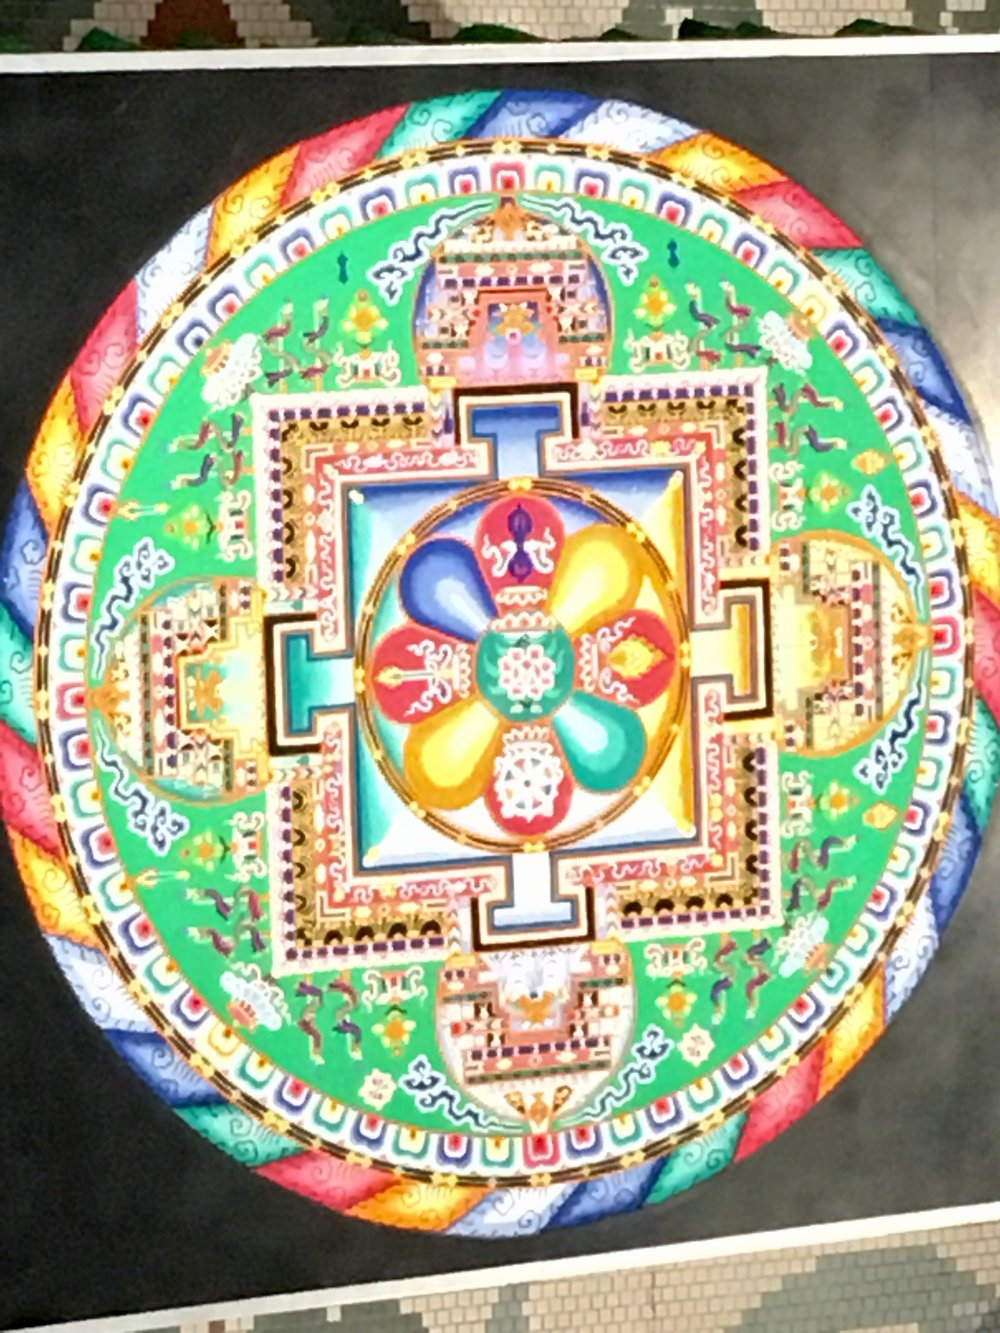 Mandala in City Hall, unfortunately the video of the deconstruction is too big to copy here.